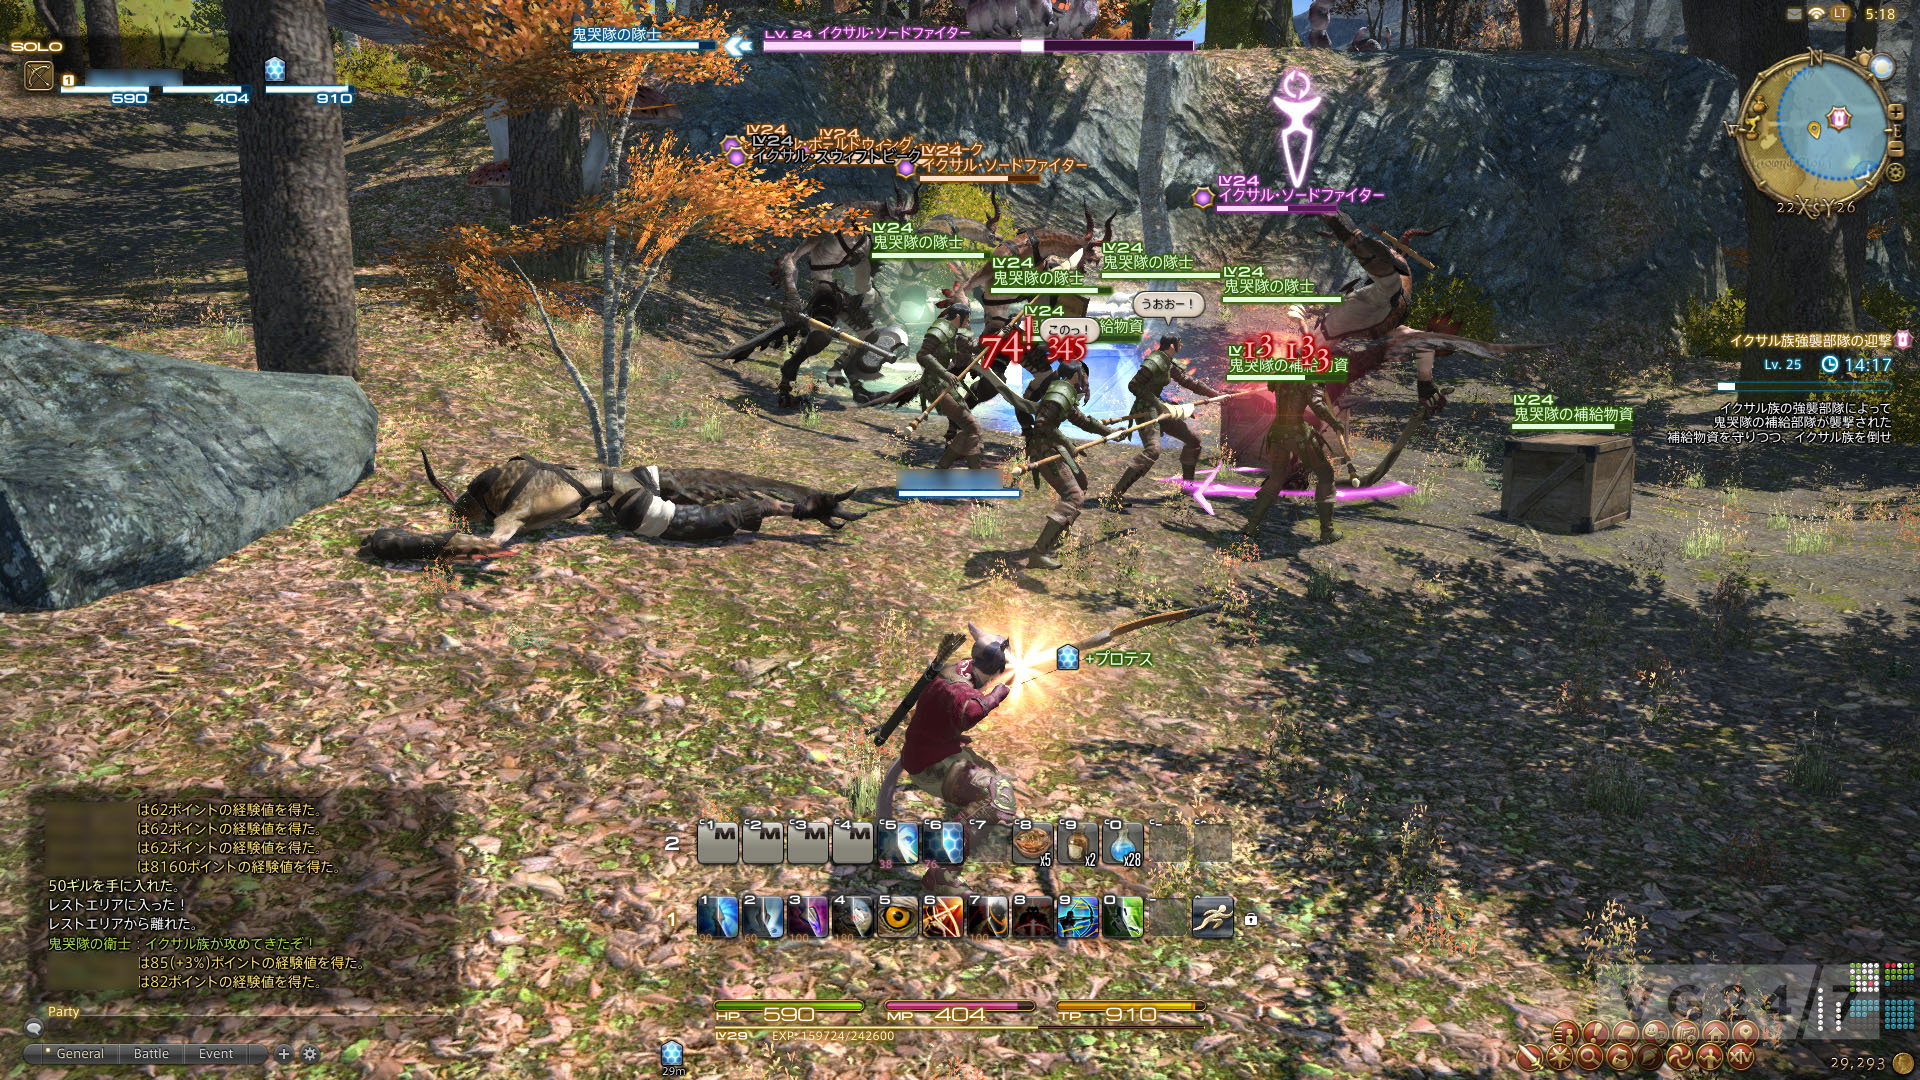 Final fantasy xiv gameplay - photo#22